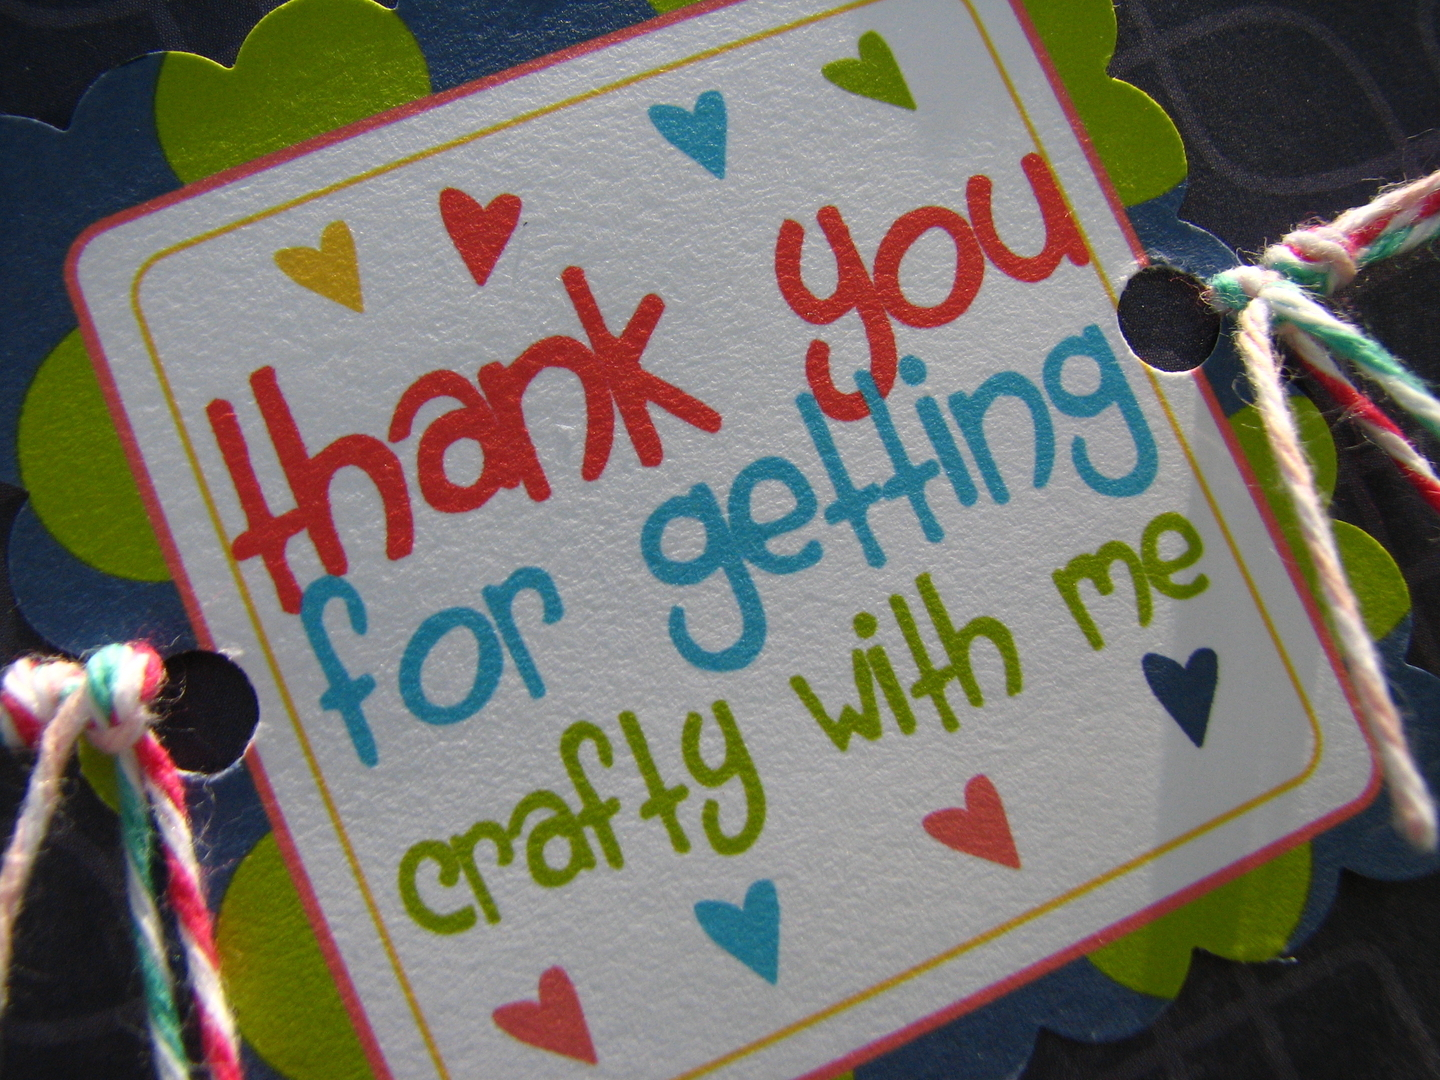 Free arts crafts party printables from sugarsticks for Craft ideas for birthday parties